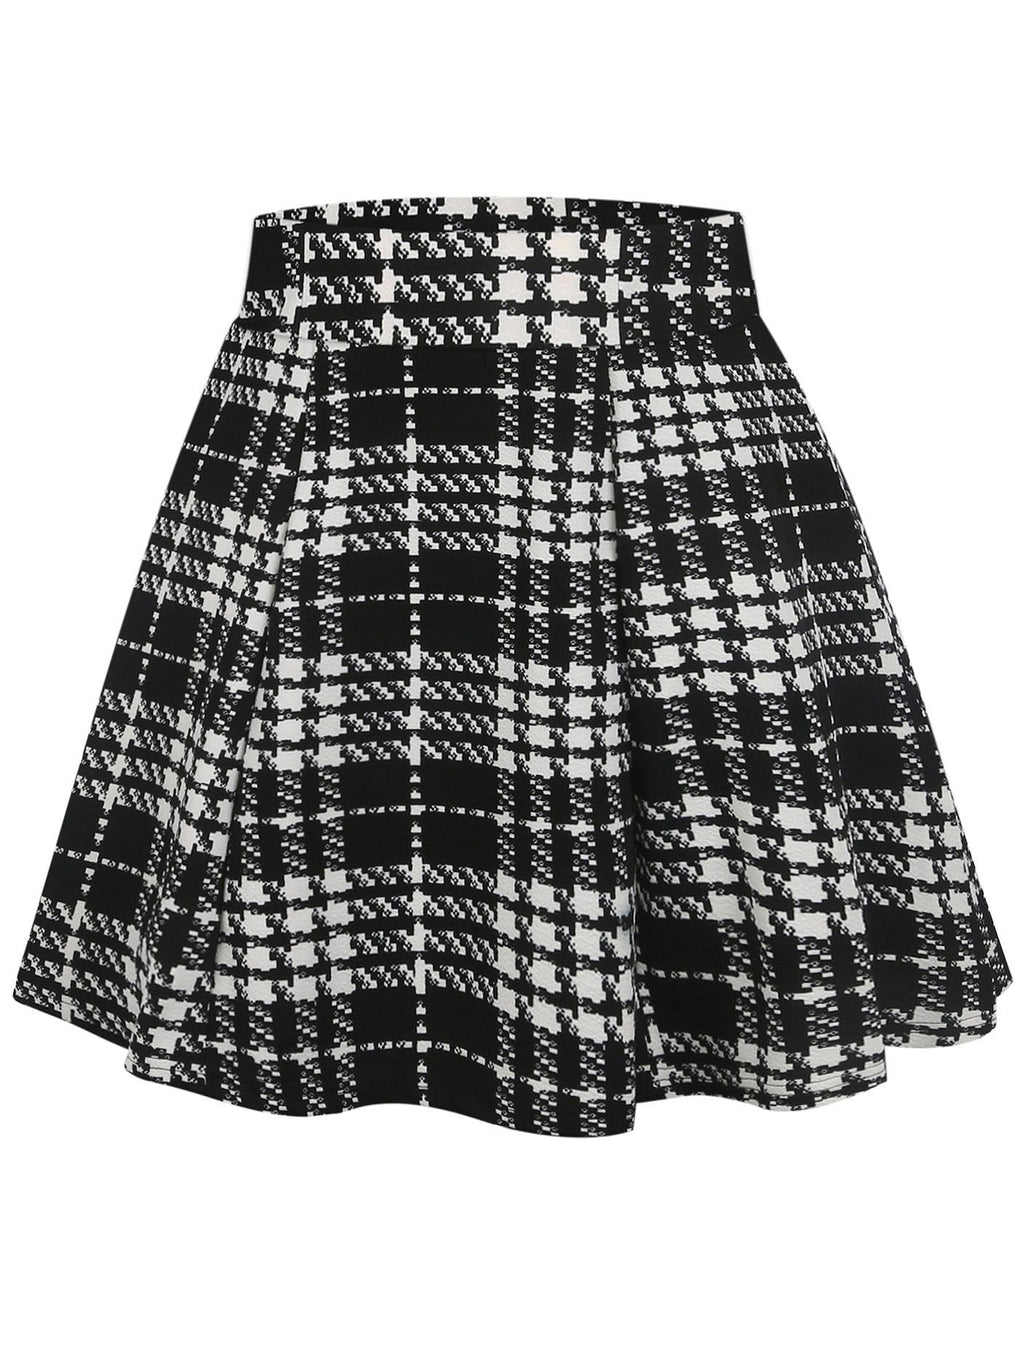 50s Plaid Print Skirt